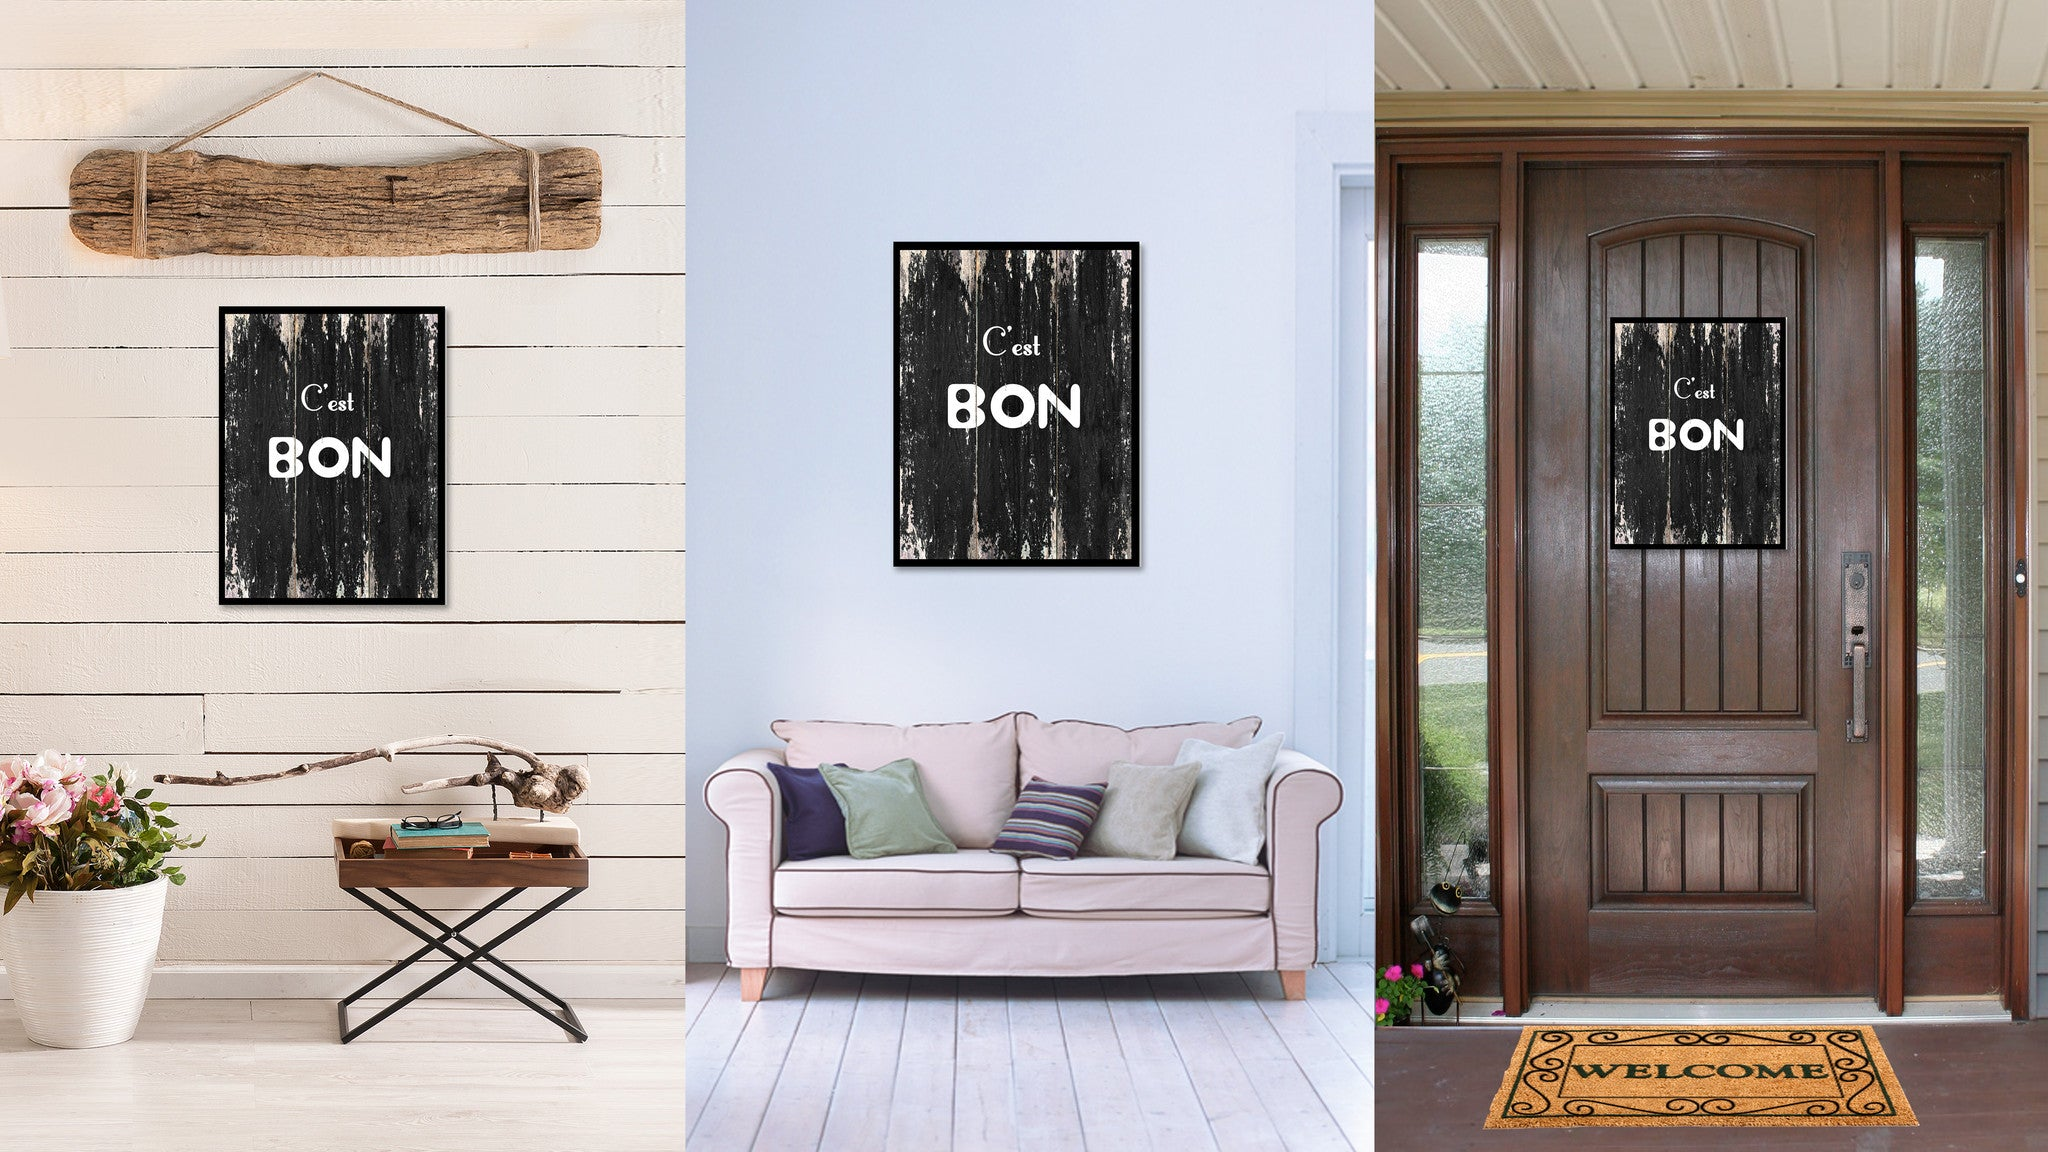 Cest Bon Quote Saying Canvas Print with Picture Frame Home Decor Wall Art